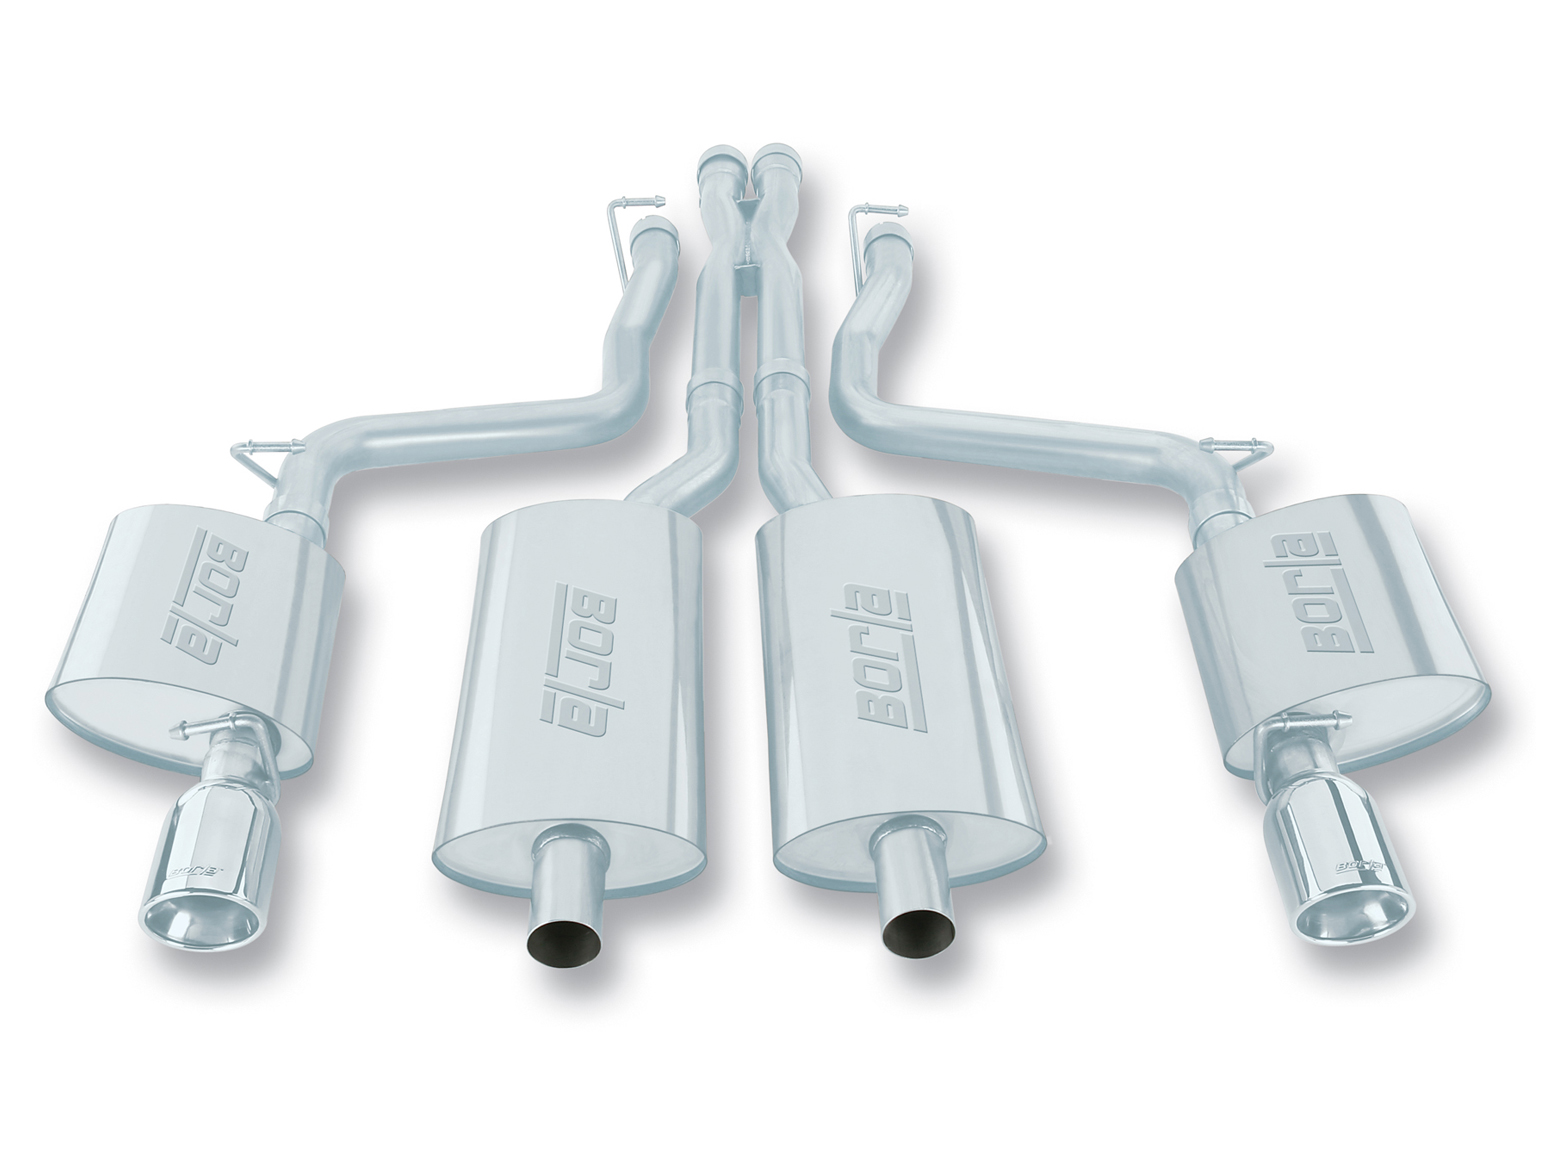 "Dodge Charger SRT-8 6.1l 2005-2010 Borla 2.5"" Cat-Back Exhaust System - Single Round Rolled Angle-Cut Lined"